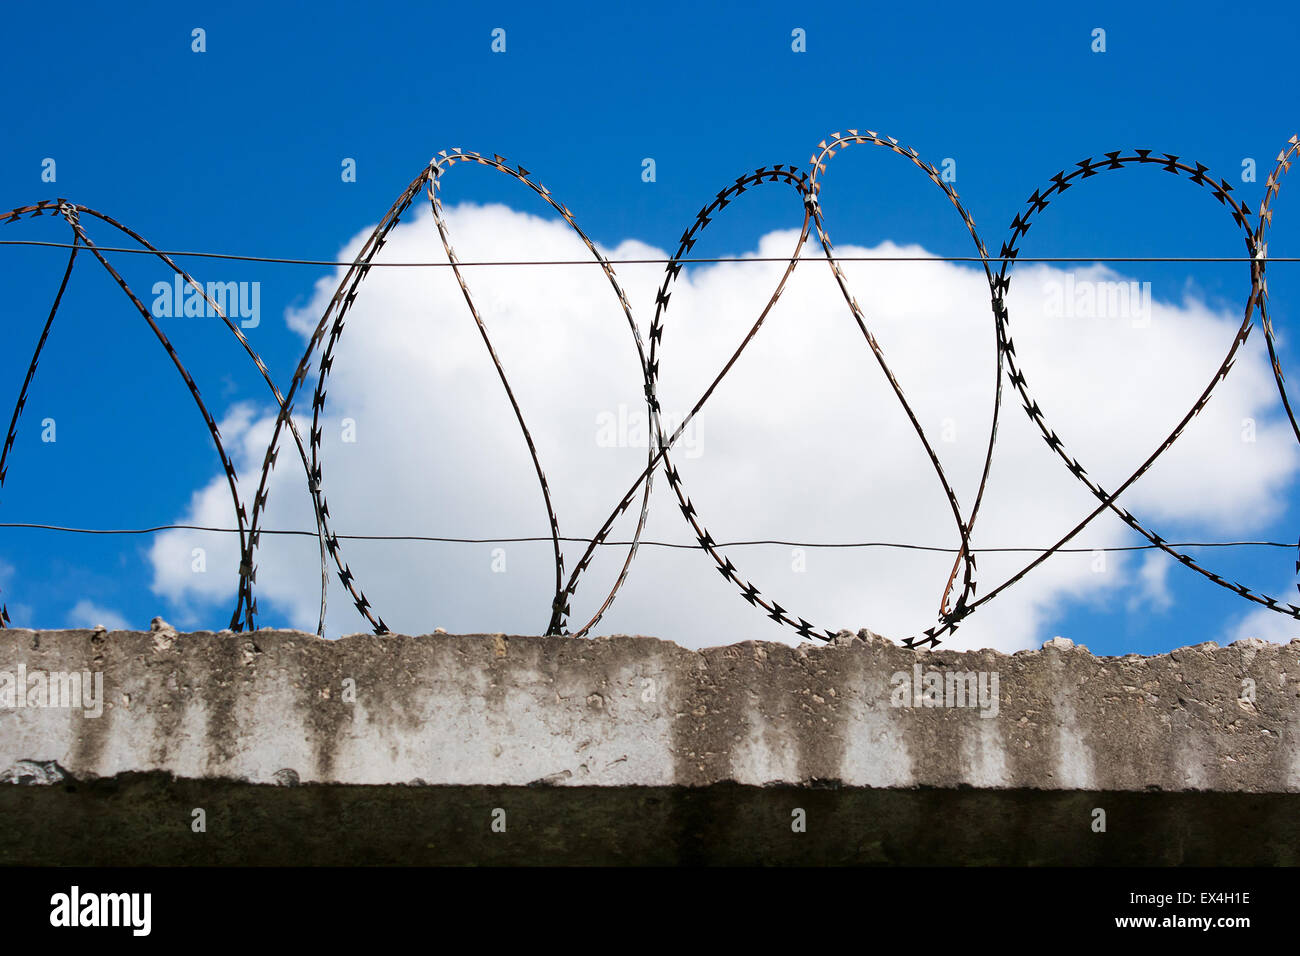 Awesome Barbed Wire Bra Ideas - Electrical Diagram Ideas - itseo.info